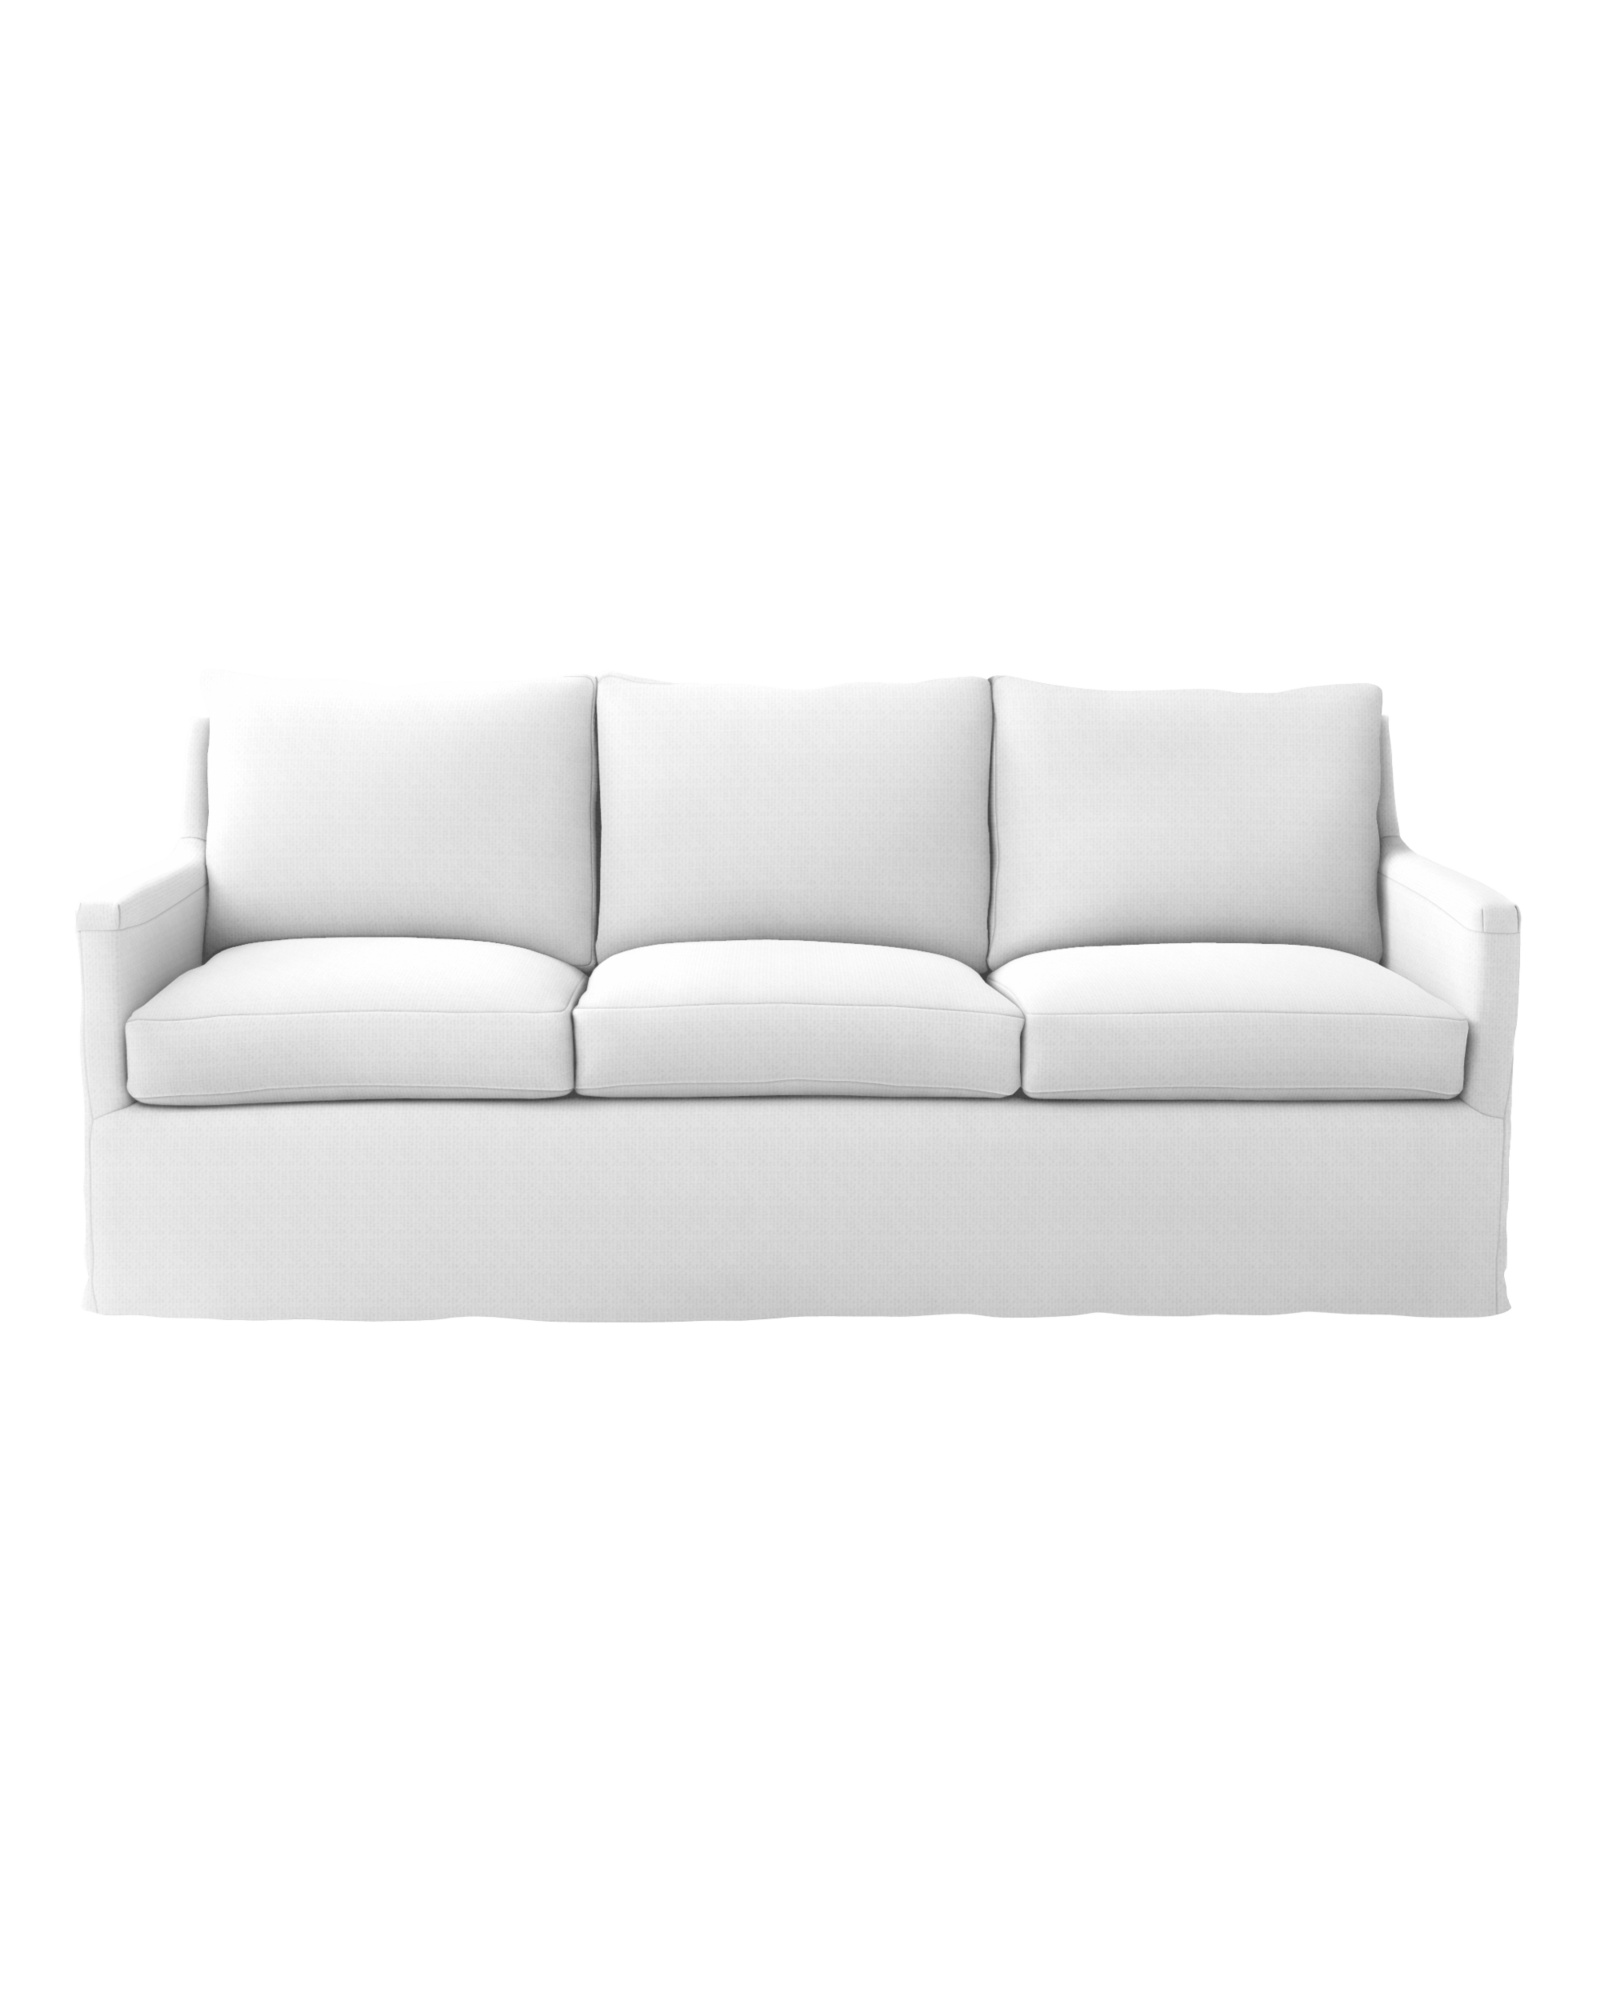 covered sofa white size slipcover slip sofas of full couch for l sectional cover piece ektorp loveseat slipcovers covers shaped